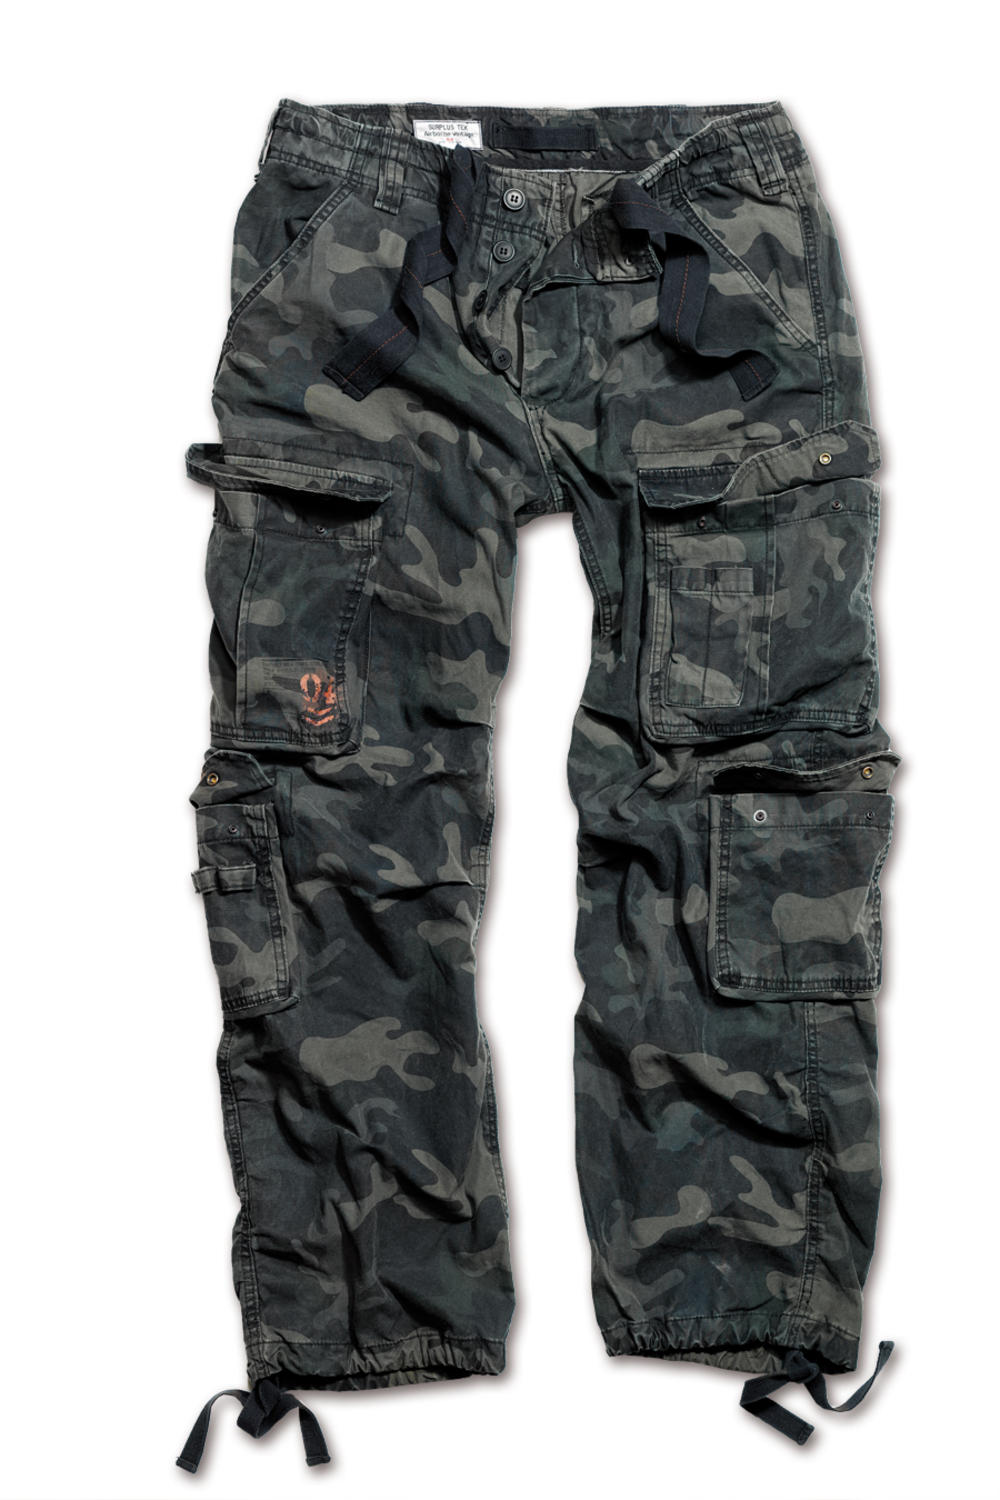 Surplus Raw Vintage Airborne Combat Trousers Pants Black Camo